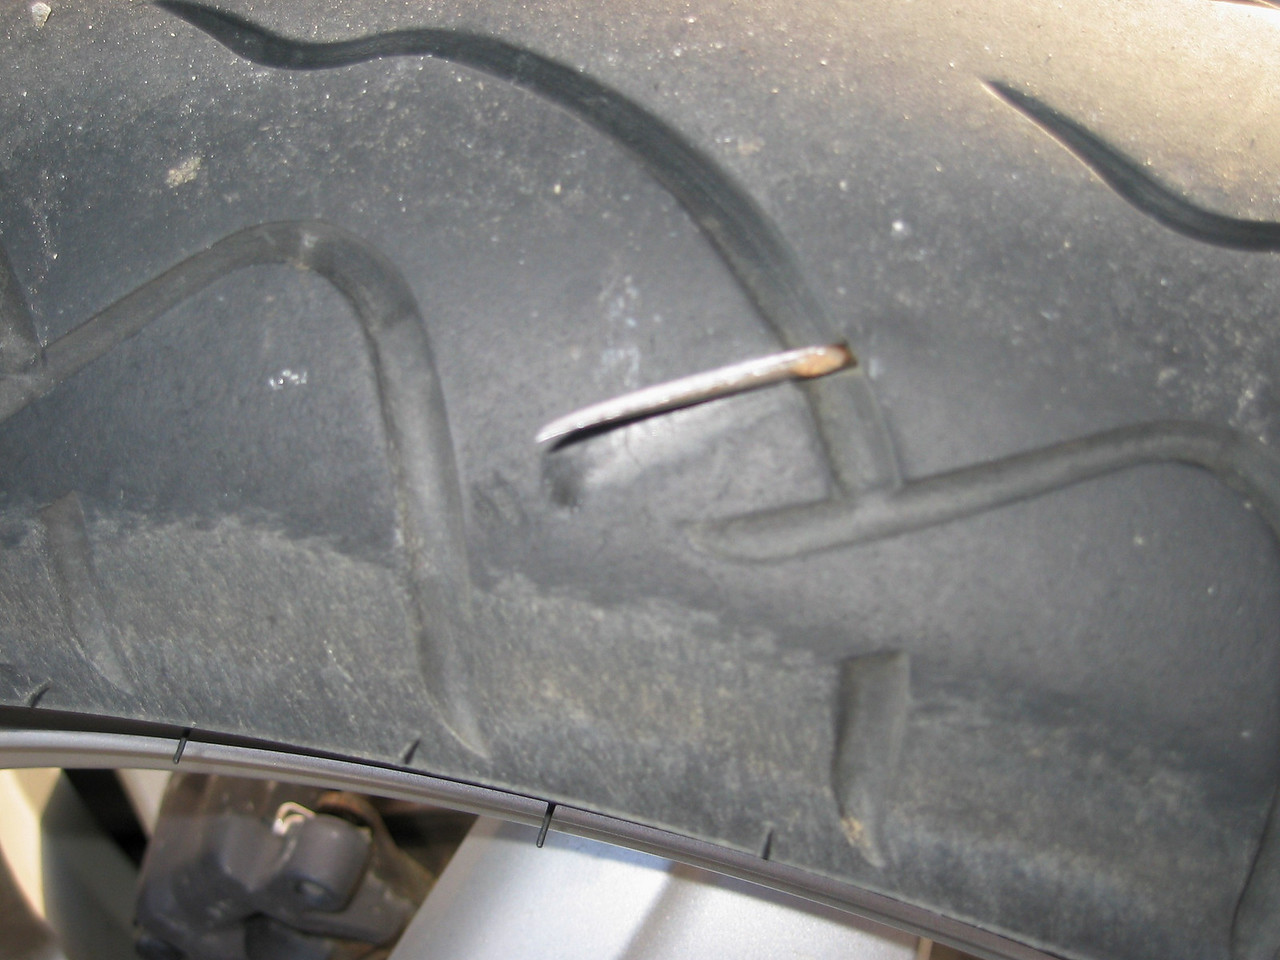 F*ck part 2: nail in the tire. Won't forget this testdrive.